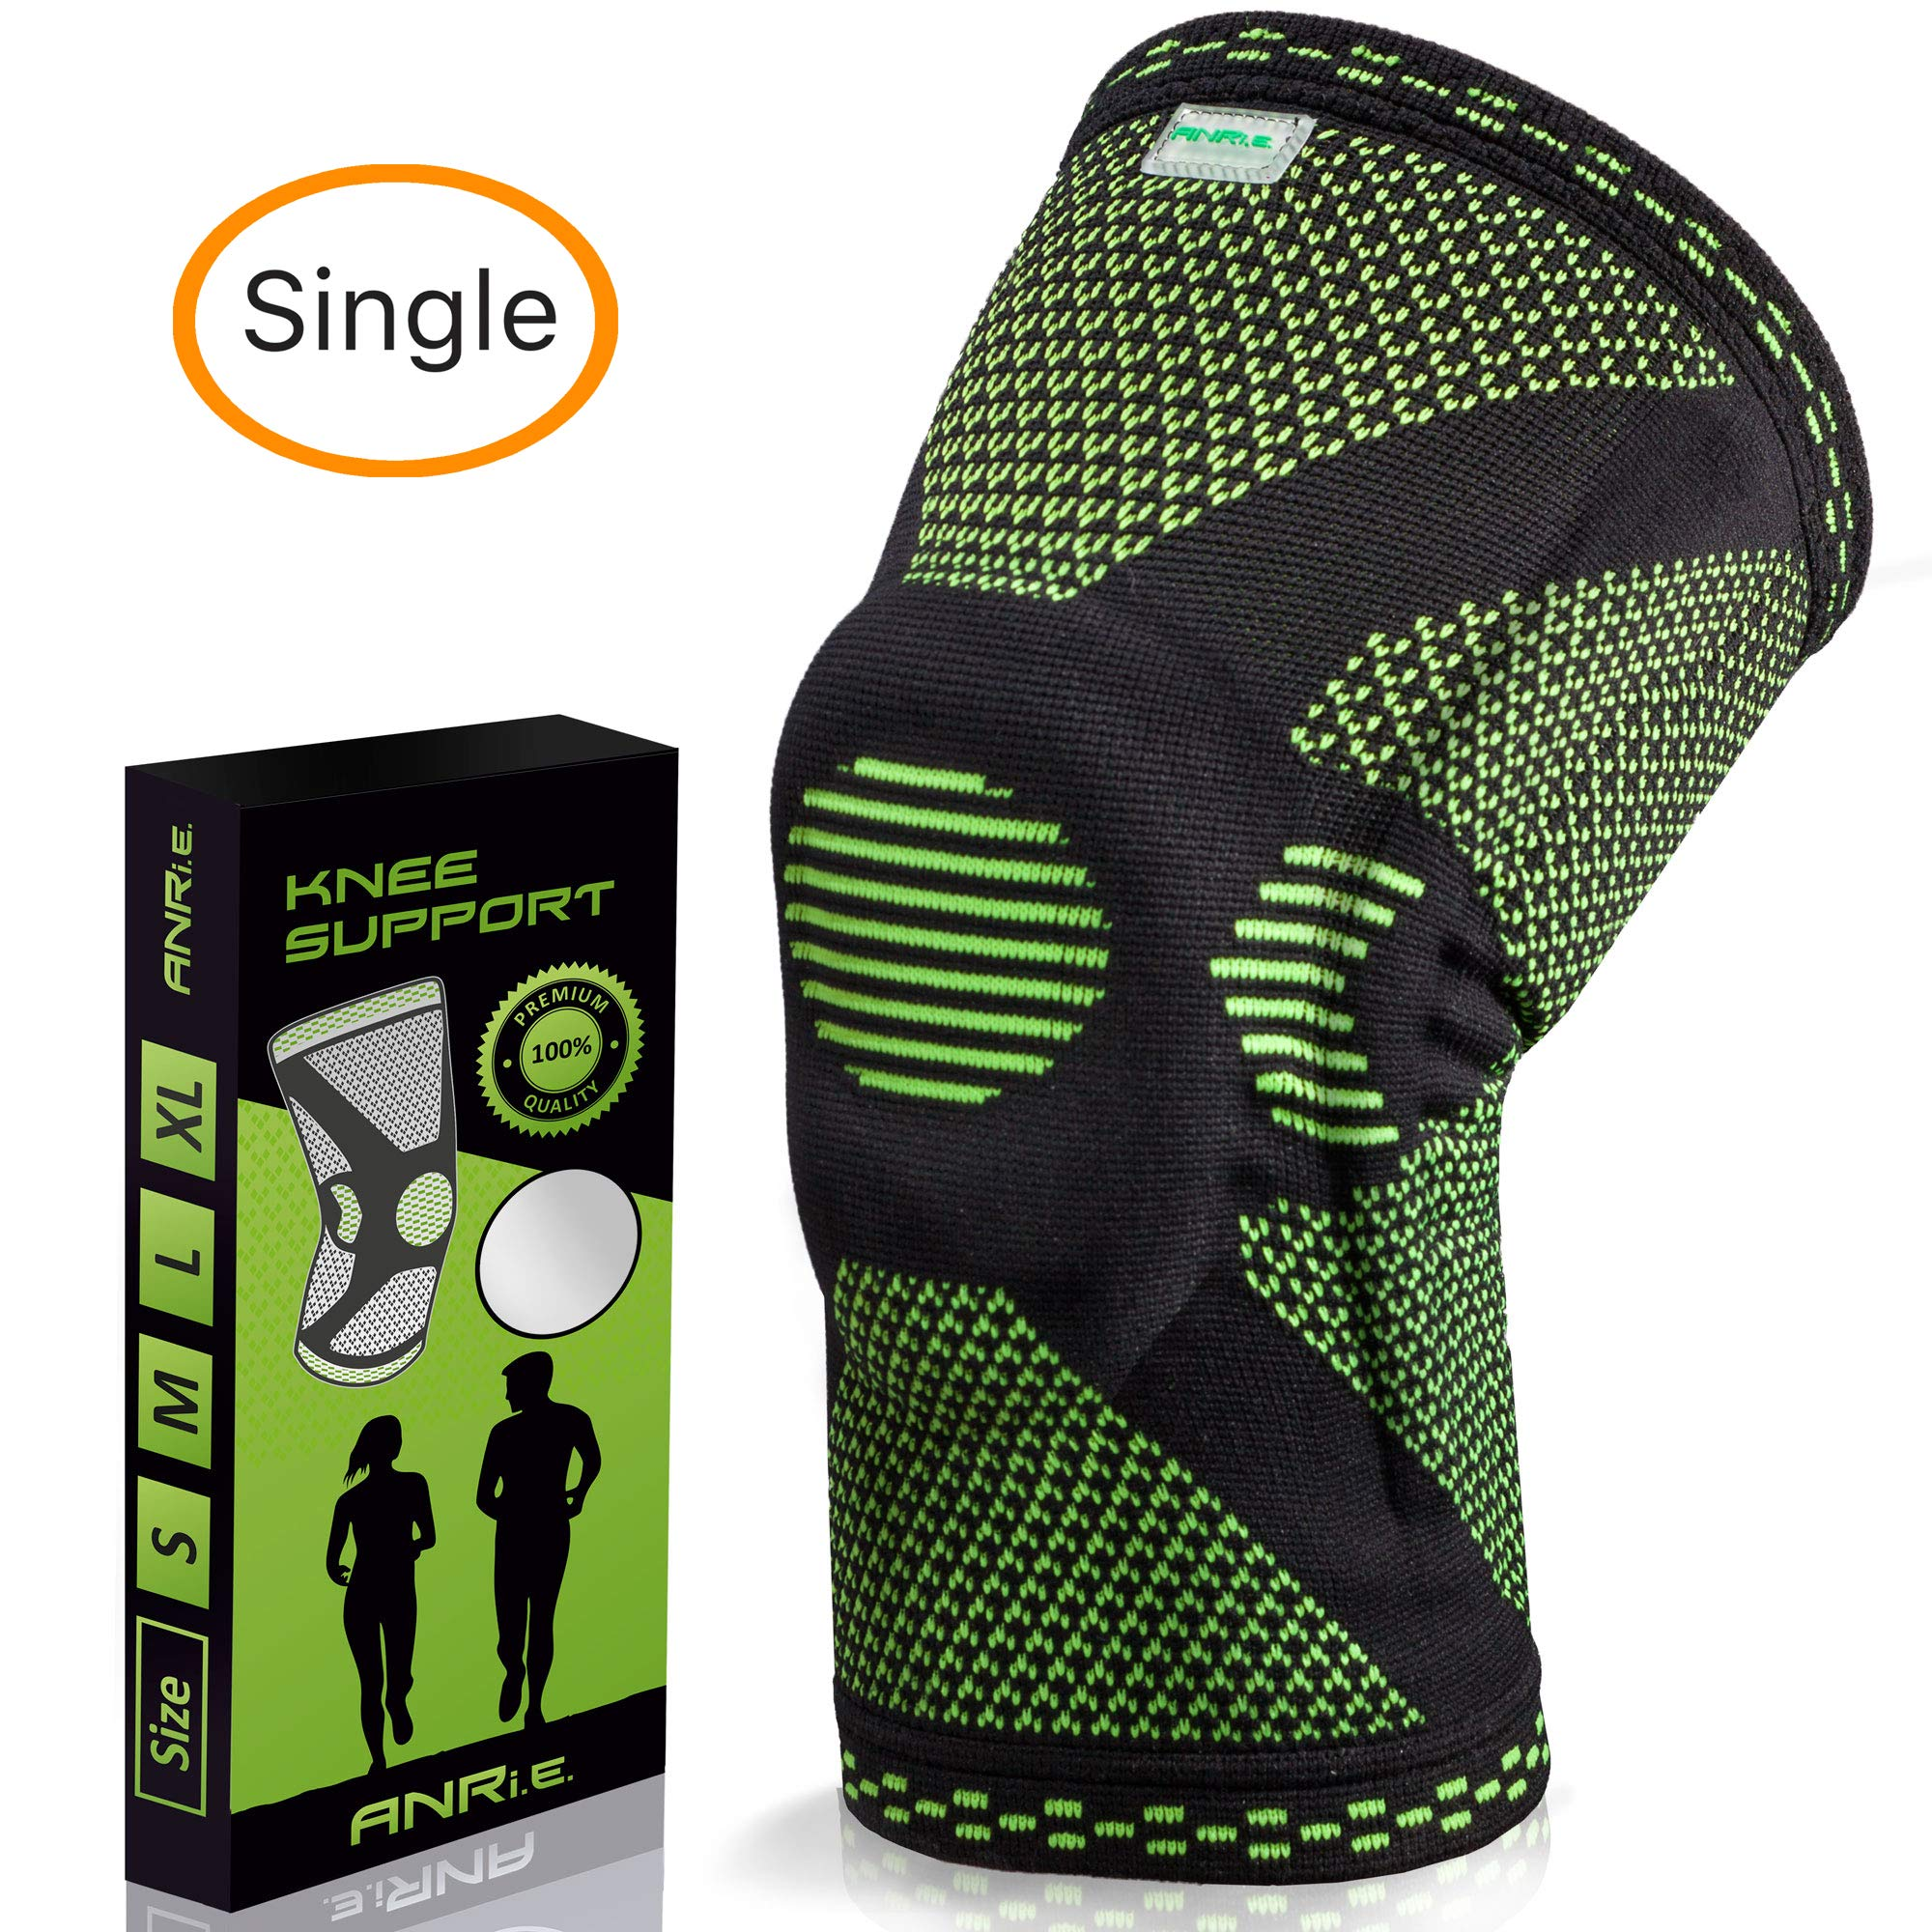 ANRI.E. Knee Brace with Silicone Pad and Elastic Metal Side Bars - Compression Sleeve for Running, Weightlifting, Powerlifting, Volleyball - Check The Size Chart - Size M, L, XL, XXL